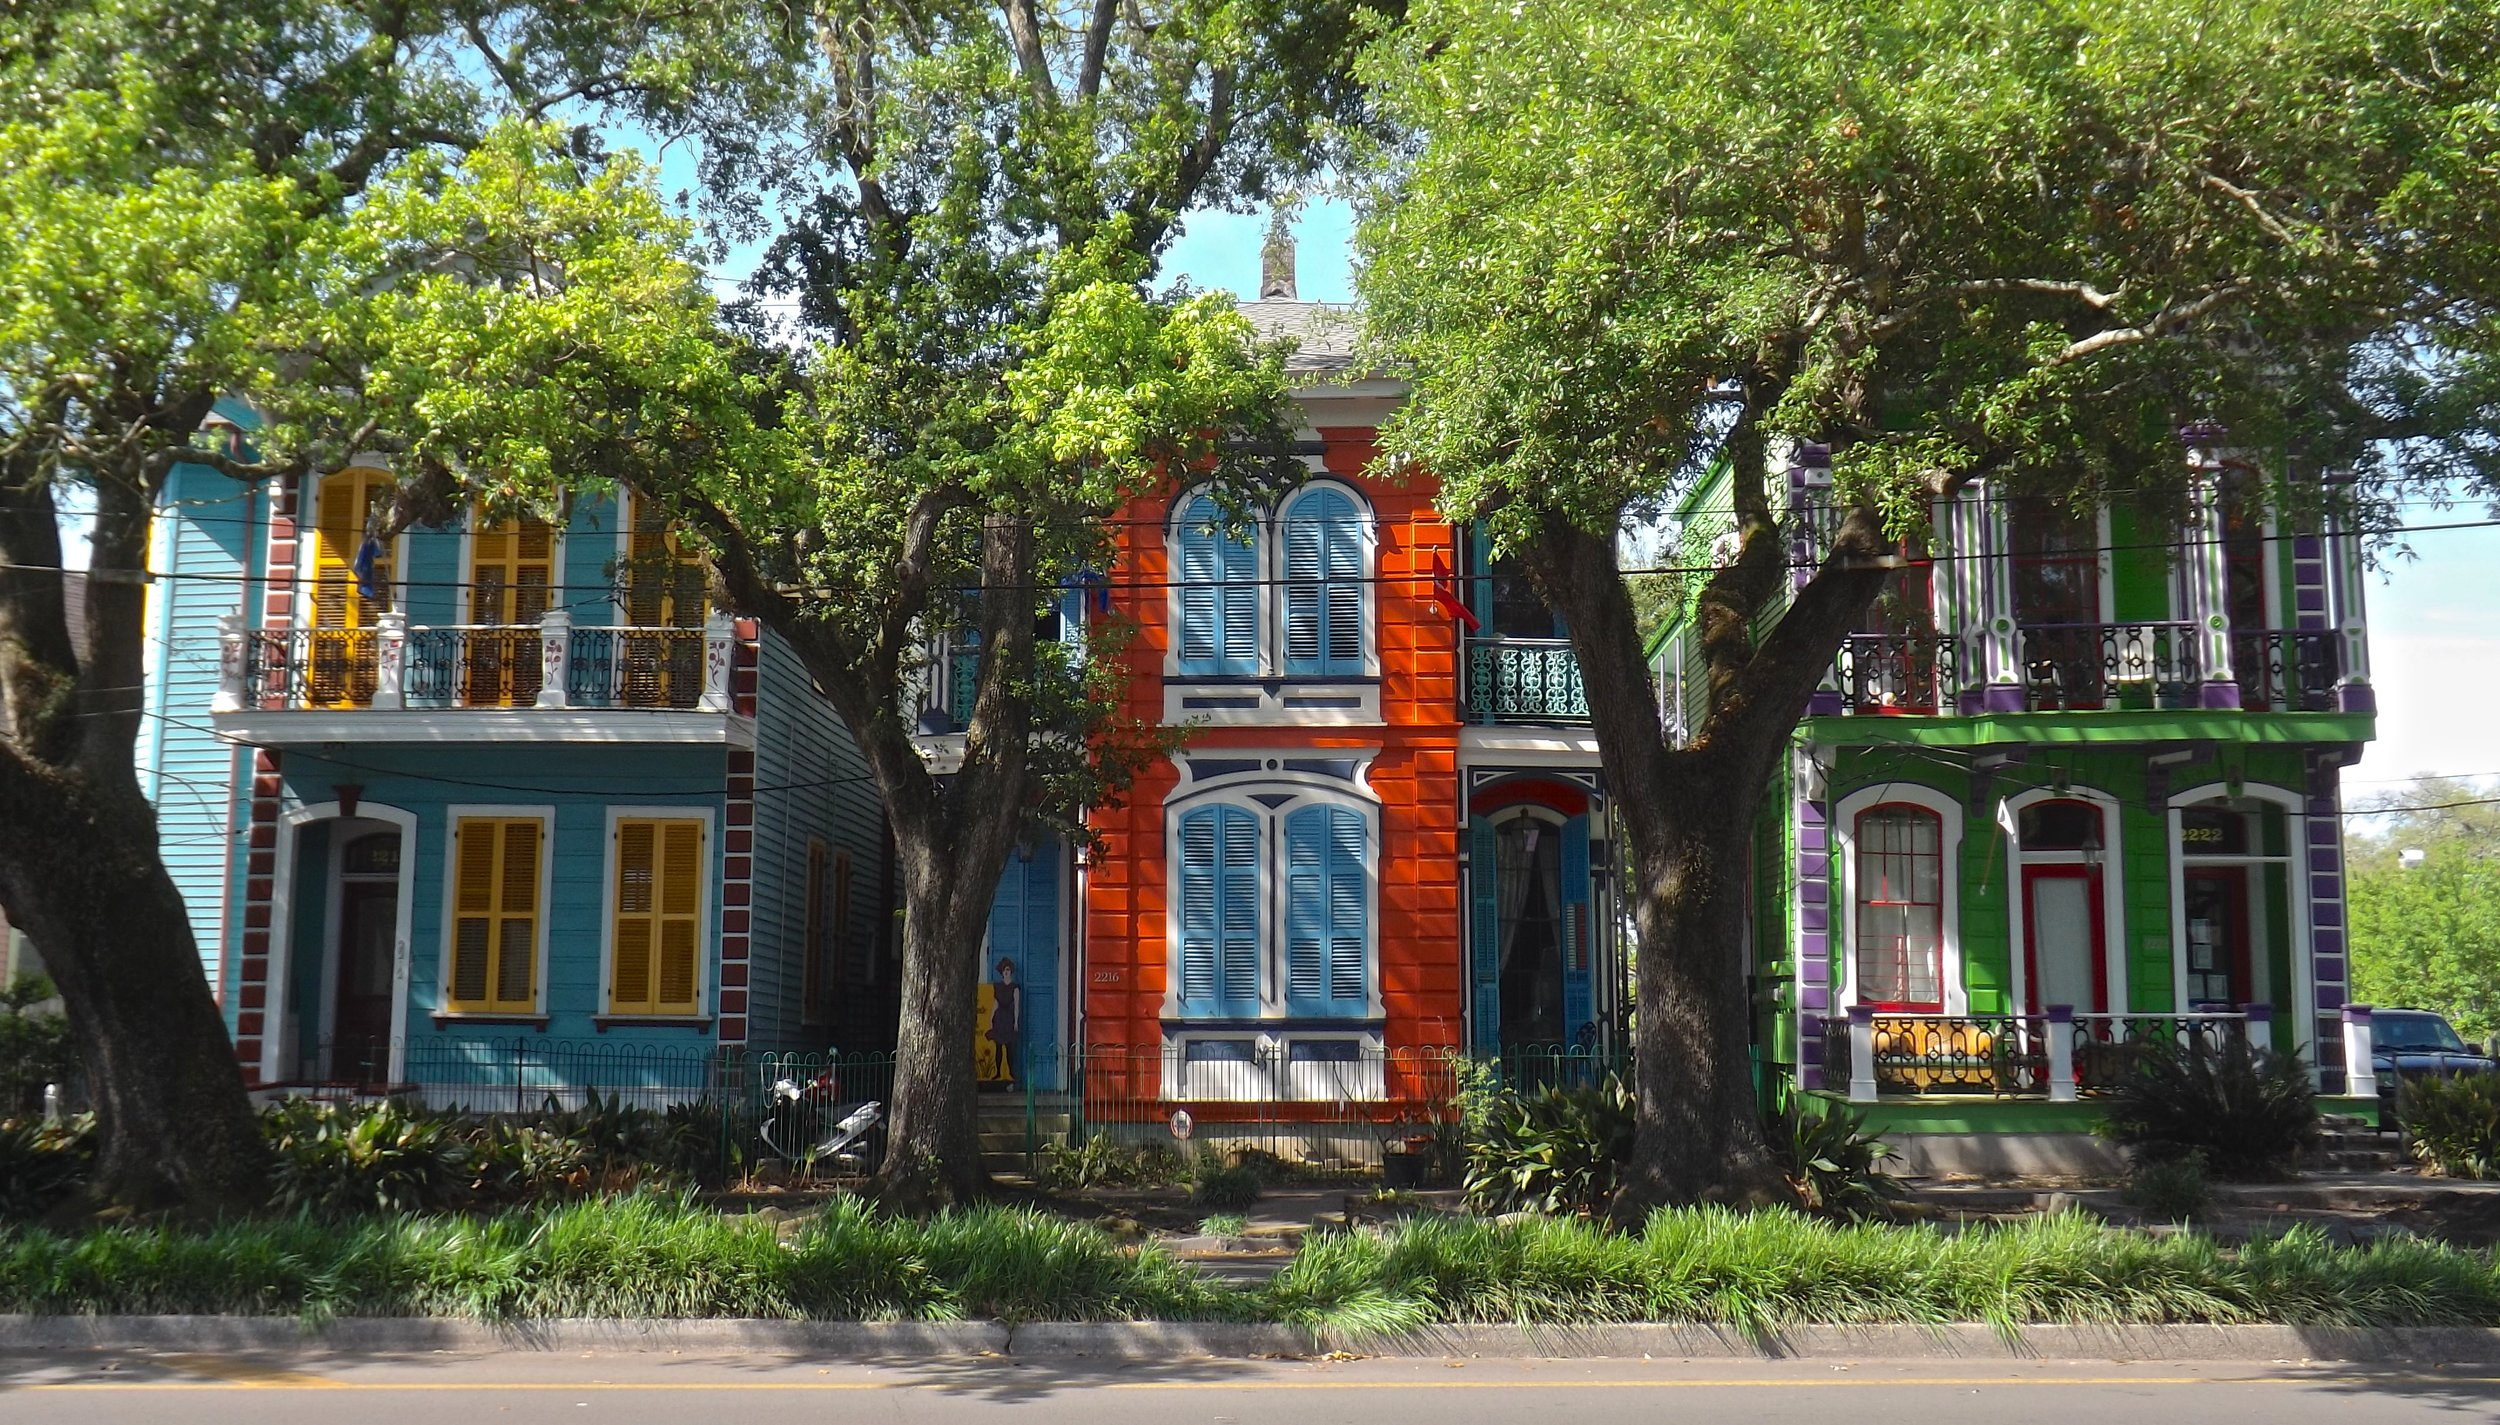 The most colorful houses on Esplanade Avenue.